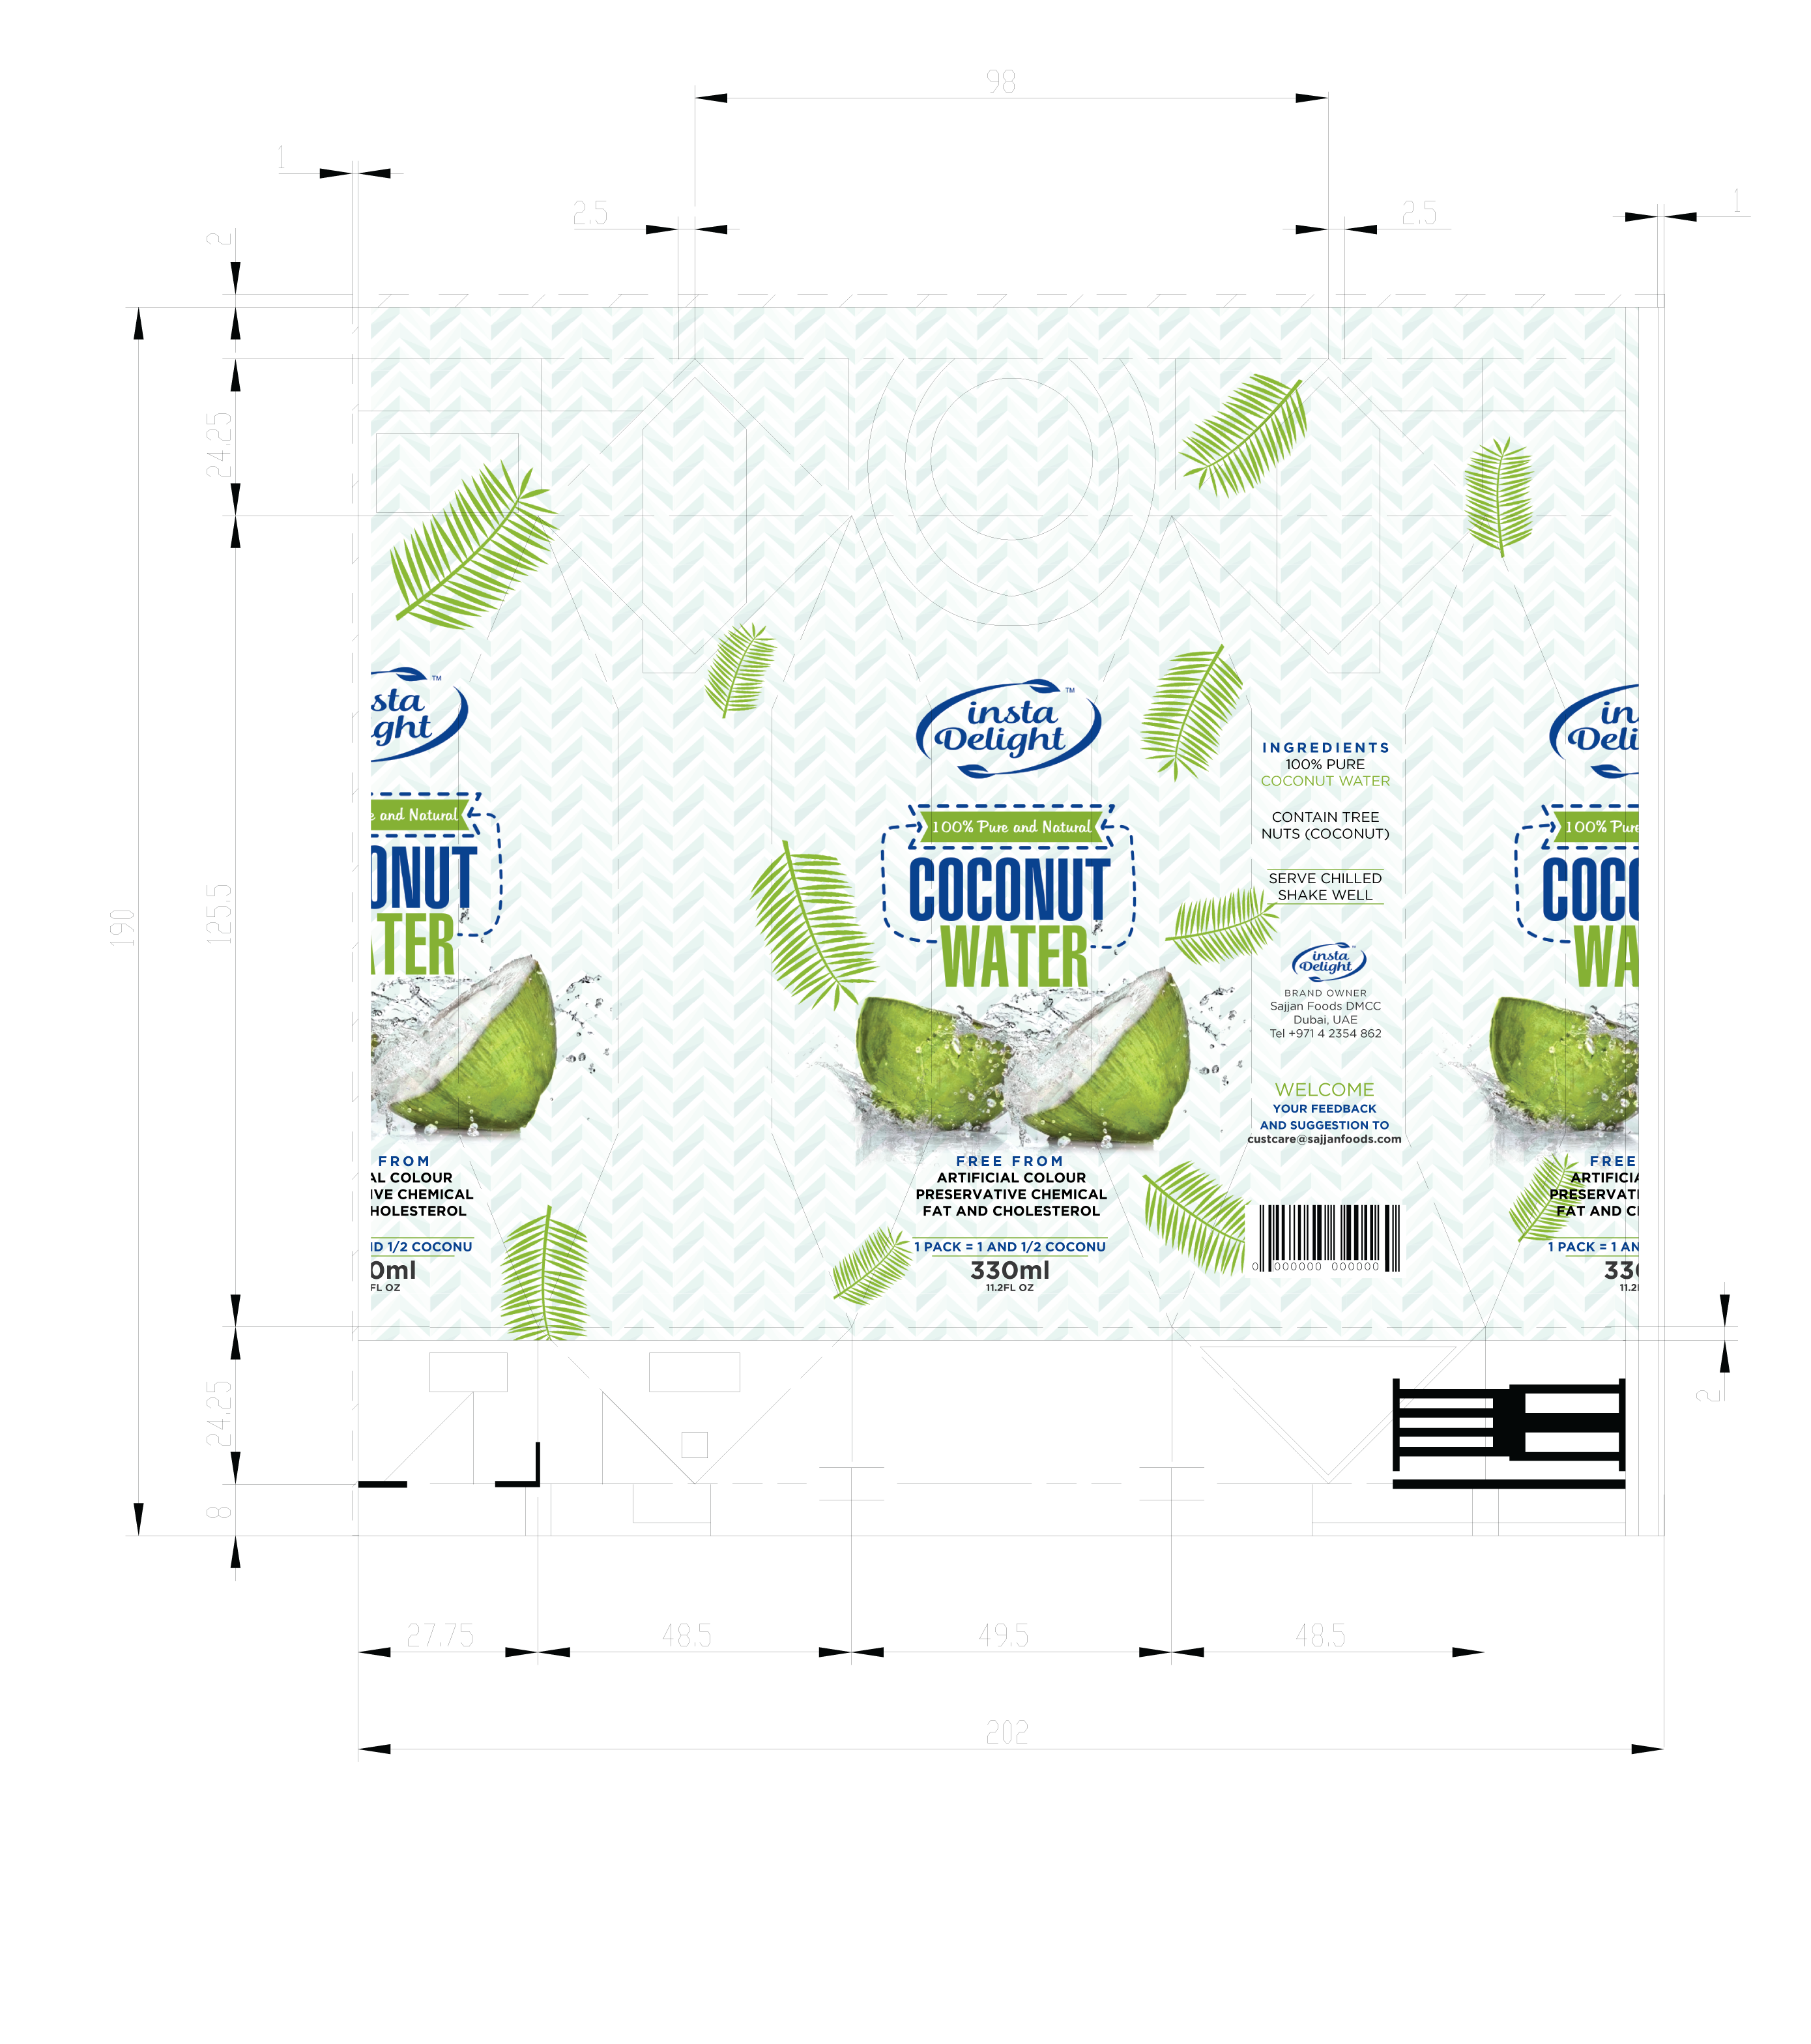 Design Tetra pack Label for Coconut water